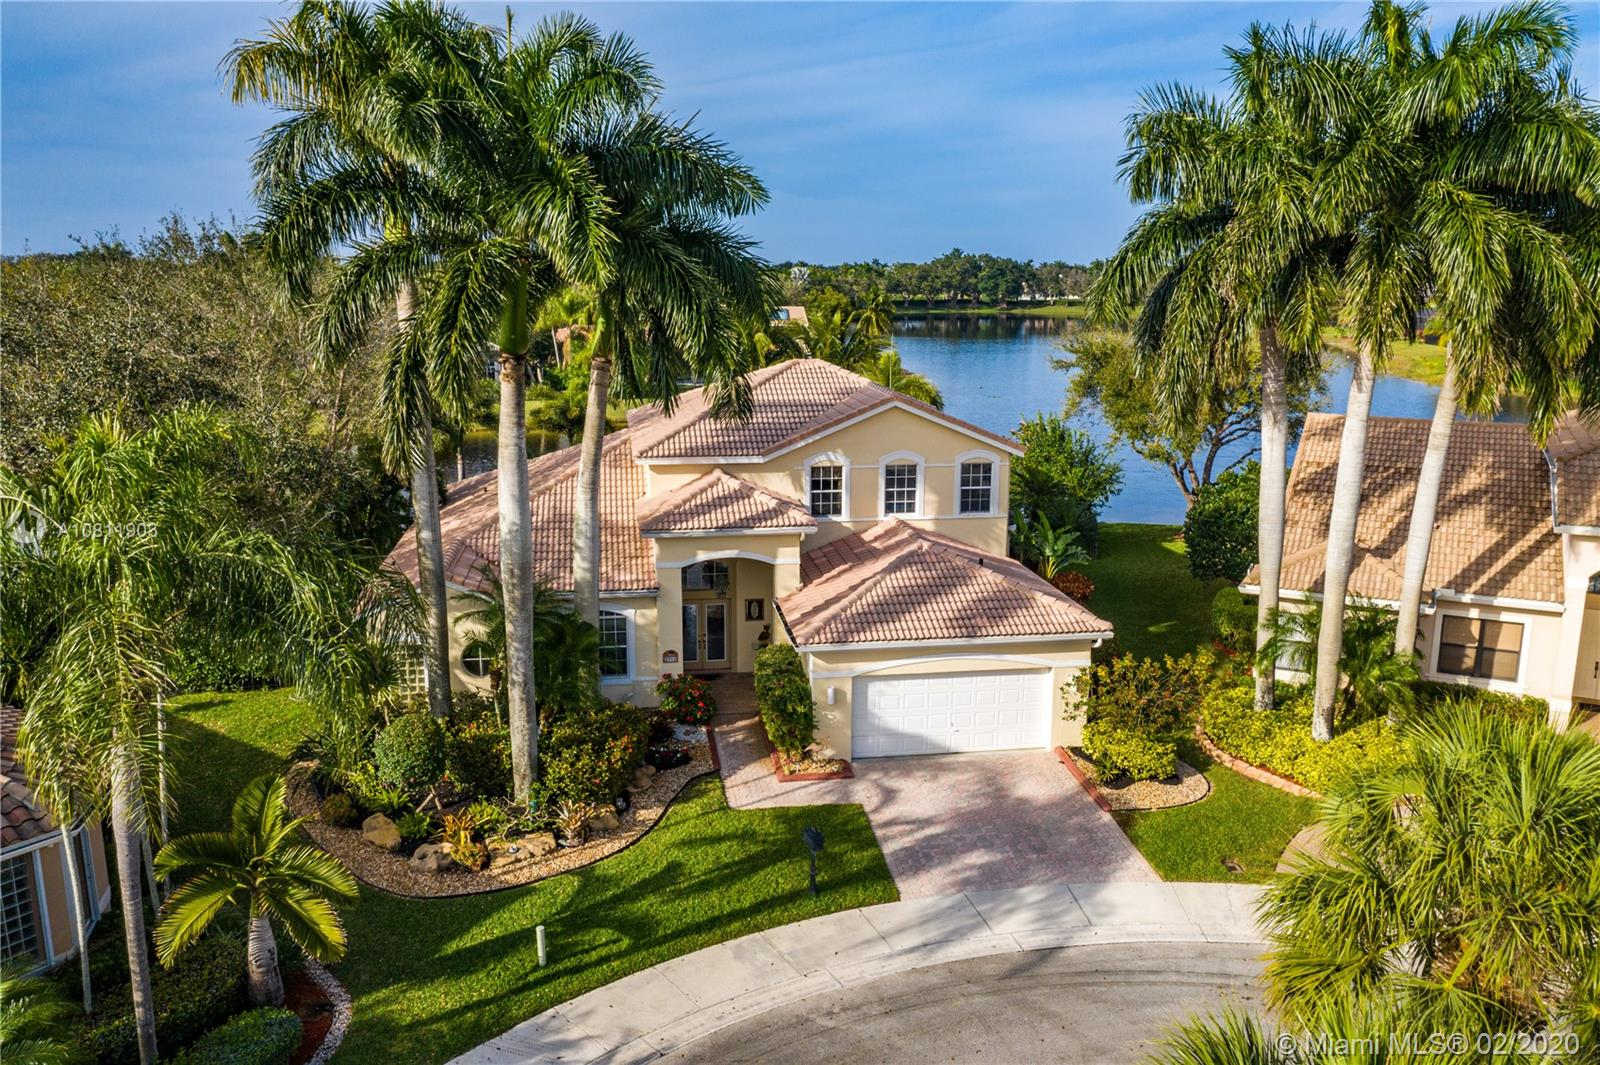 """Weston Hills C.C. 16,095 sf pie shaped cul-de-sac lot w/gorgeous lake views 5B/4B 3834 Sq ft home boasts a Lg extended paved patio custom pool waterfalls new led lights, hot tub fenced Perfect for Entertaining! Surround sound system! Grand Master Bedroom on 1st Fl w/3 Bed upstairs w/5th bedroom downstairs used as office/den w/custom closets/built-in Lg neutral diagonal Tile throughout, Carpet in Bedrooms. Spacious, Huge dine in Gourmet Kitchen w Granite/New Appliances/extra tall cabinetry/wine cooler/Lg island & Bar/Built in Elec. Sweeper/Vacuum System Formal Dining & Living Room WHCC an exclusive family-oriented community in City of Weston w/2 pristine 18-hole championship golf courses, known as Weston Hills Golf and Country Club. """"A"""" rated schools and easy access to the hwy. AC's 5 yrs"""